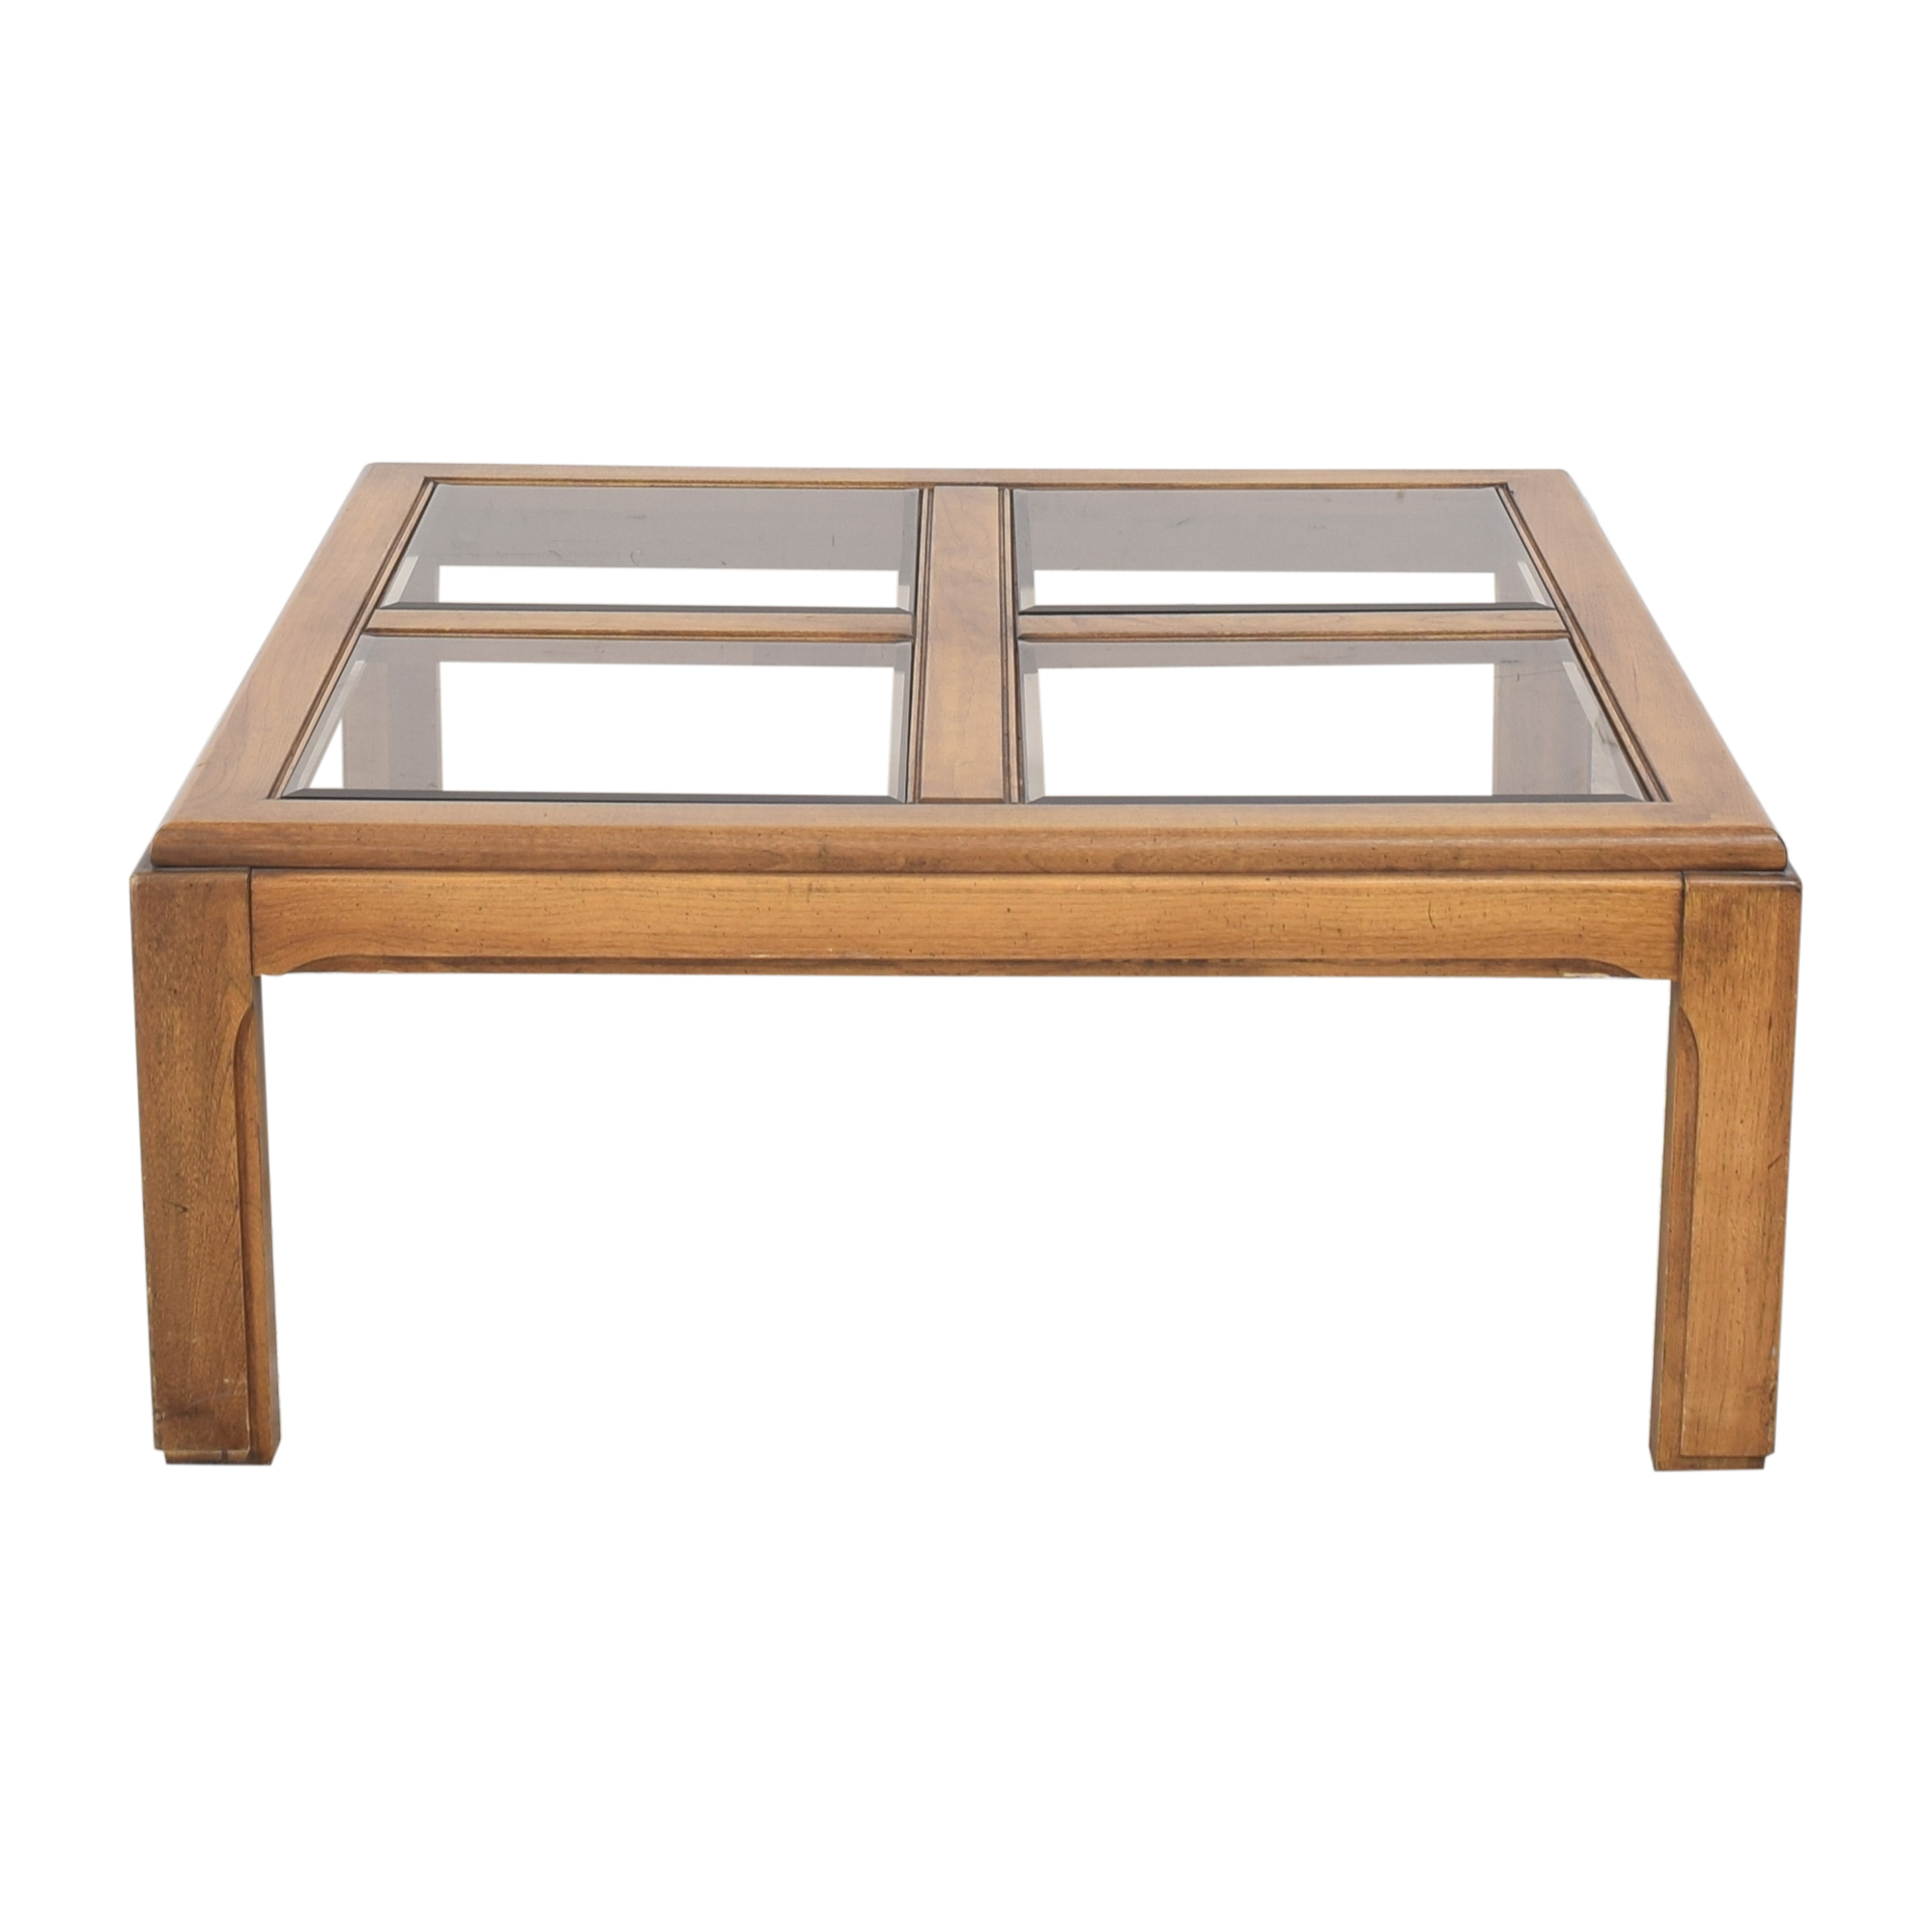 Lane Furniture Lane Furniture Glass Grid Coffee Table coupon